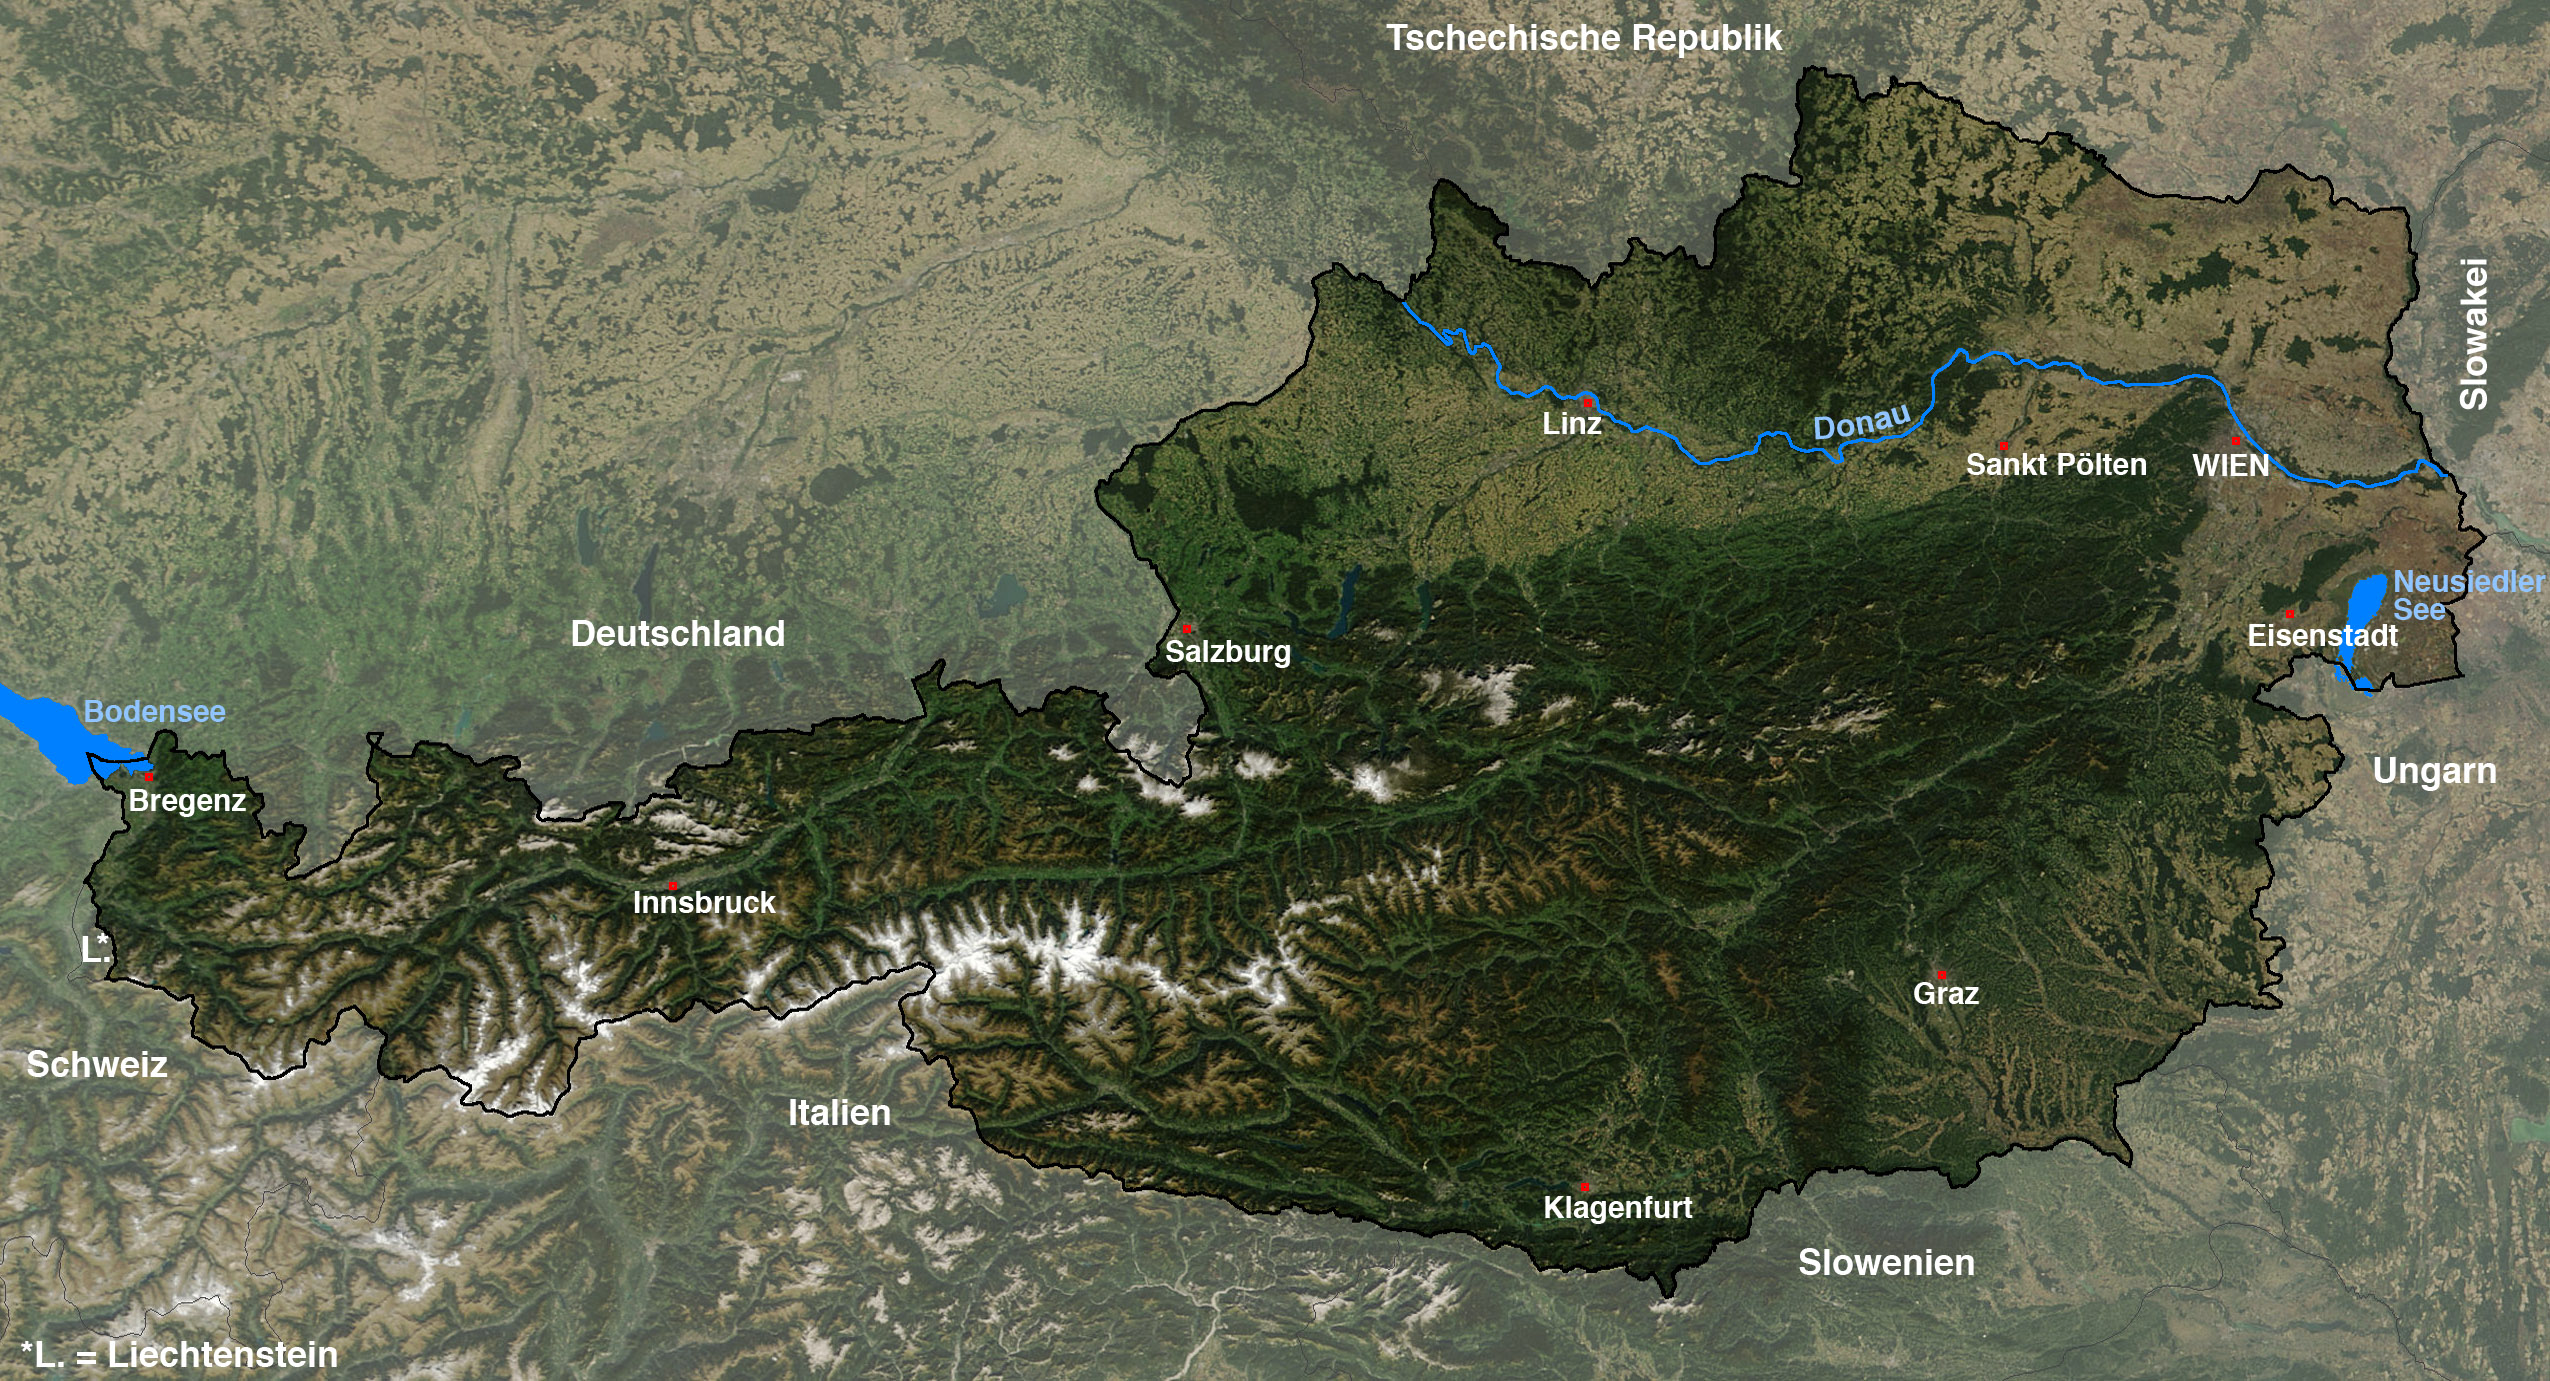 Austria_satellite_annotated.jpg